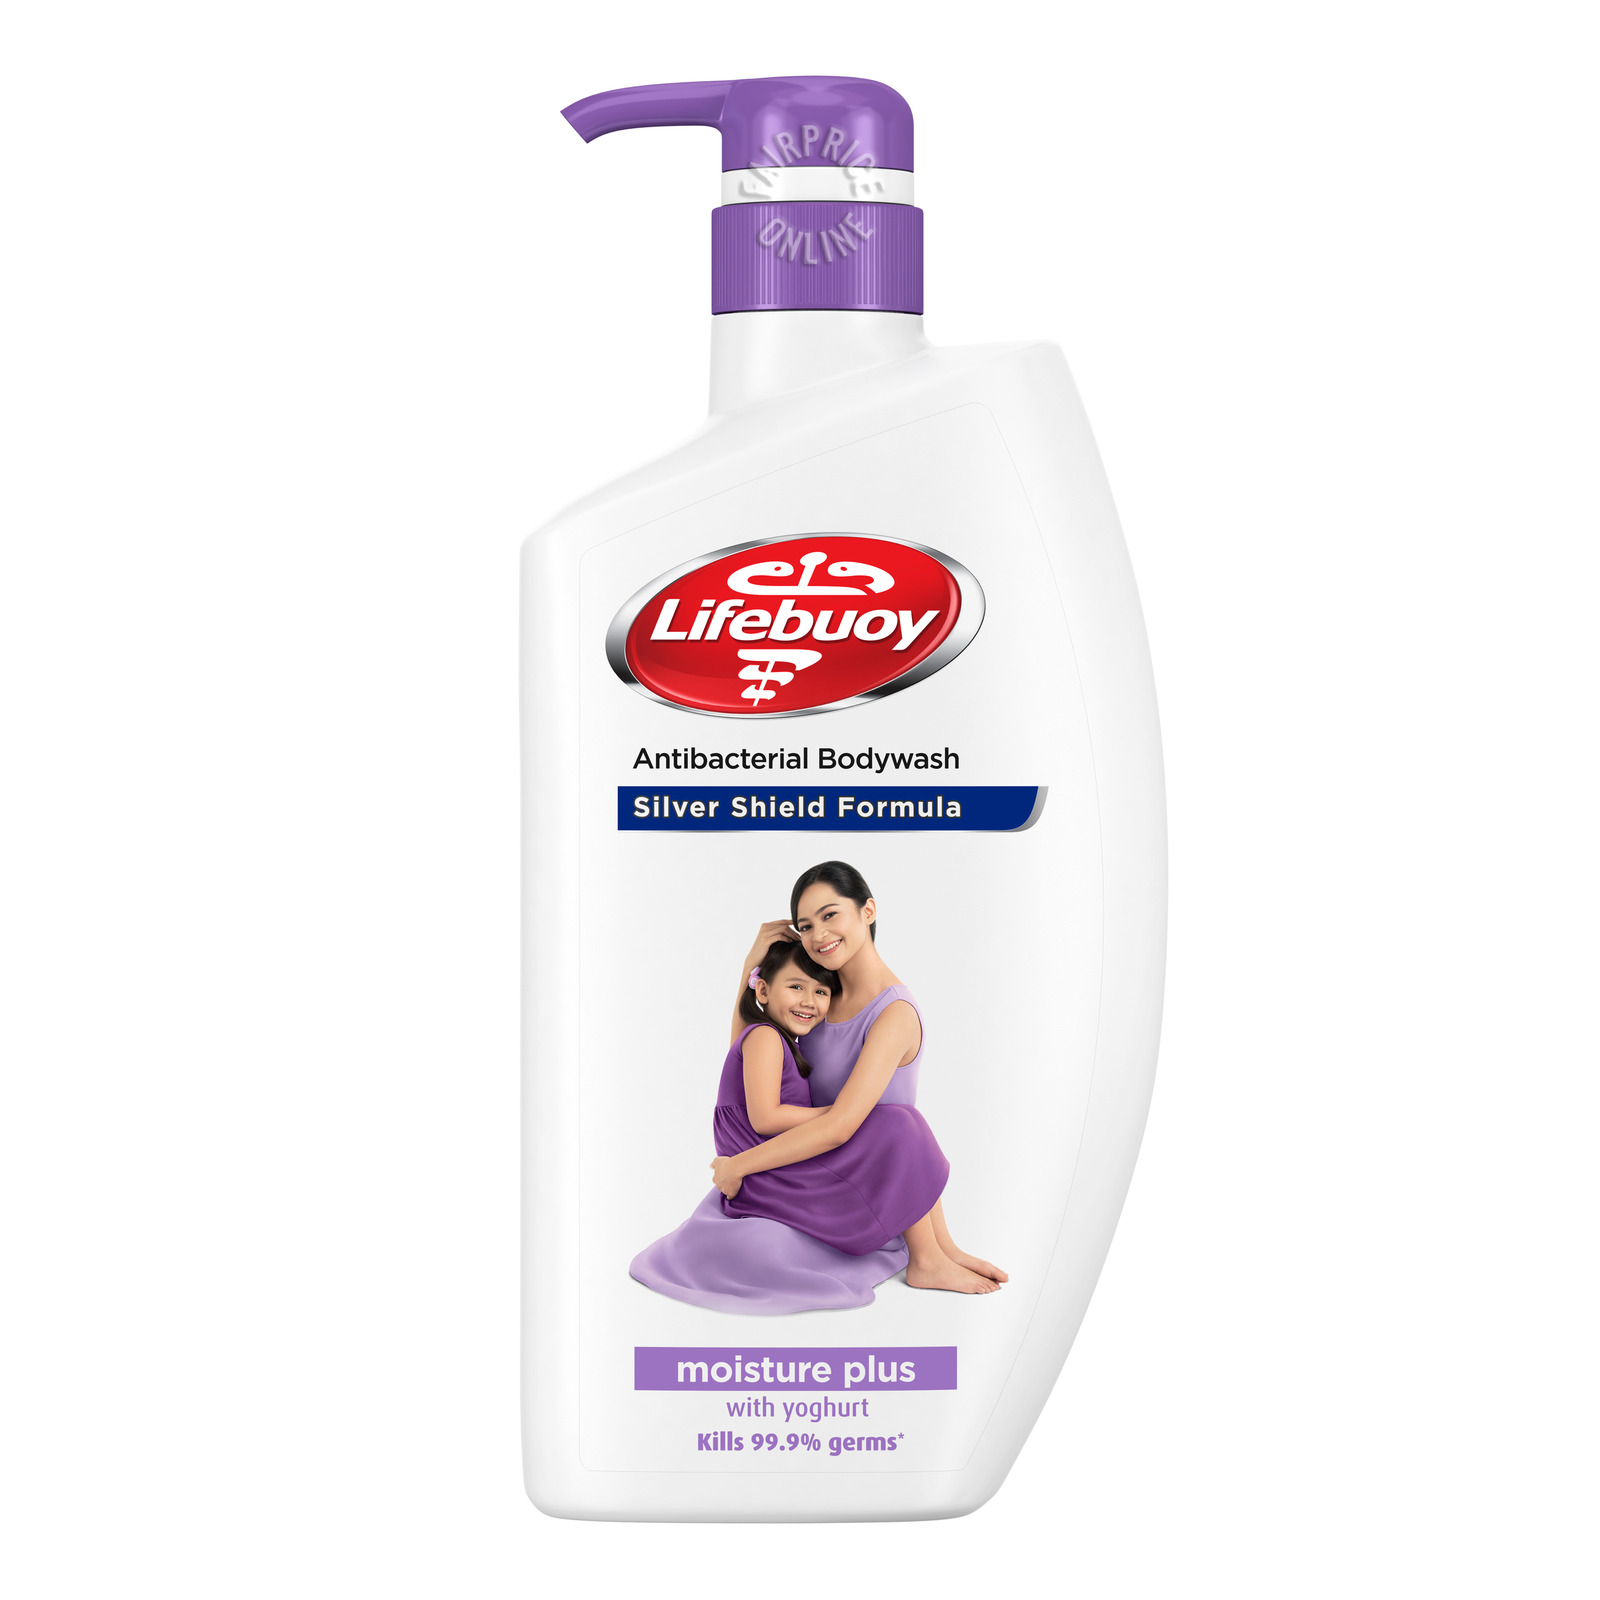 Lifebuoy Antibacterial Body Wash - Moisture Plus